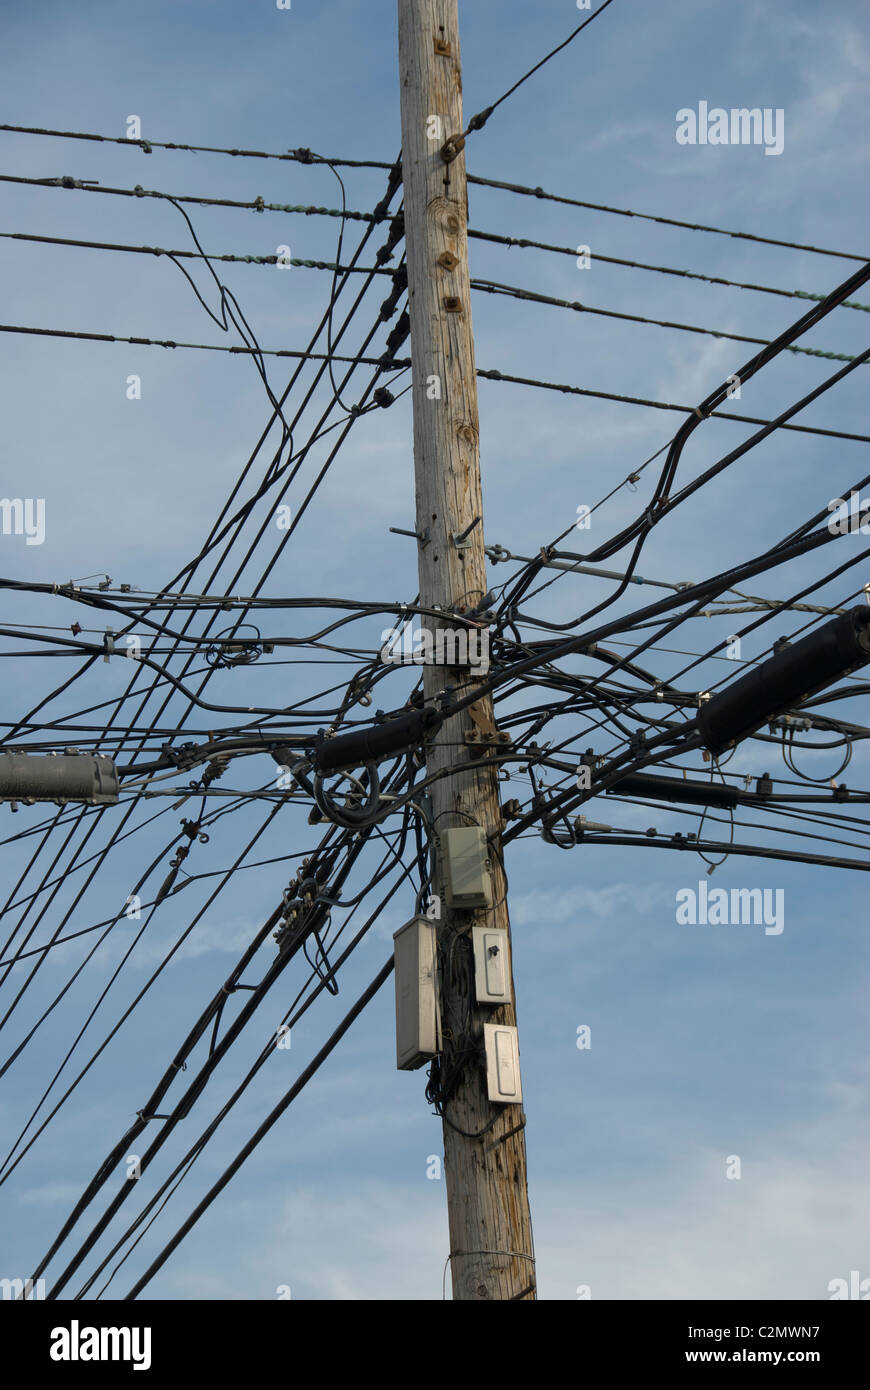 messy wires stock photos u0026 messy wires stock images alamy